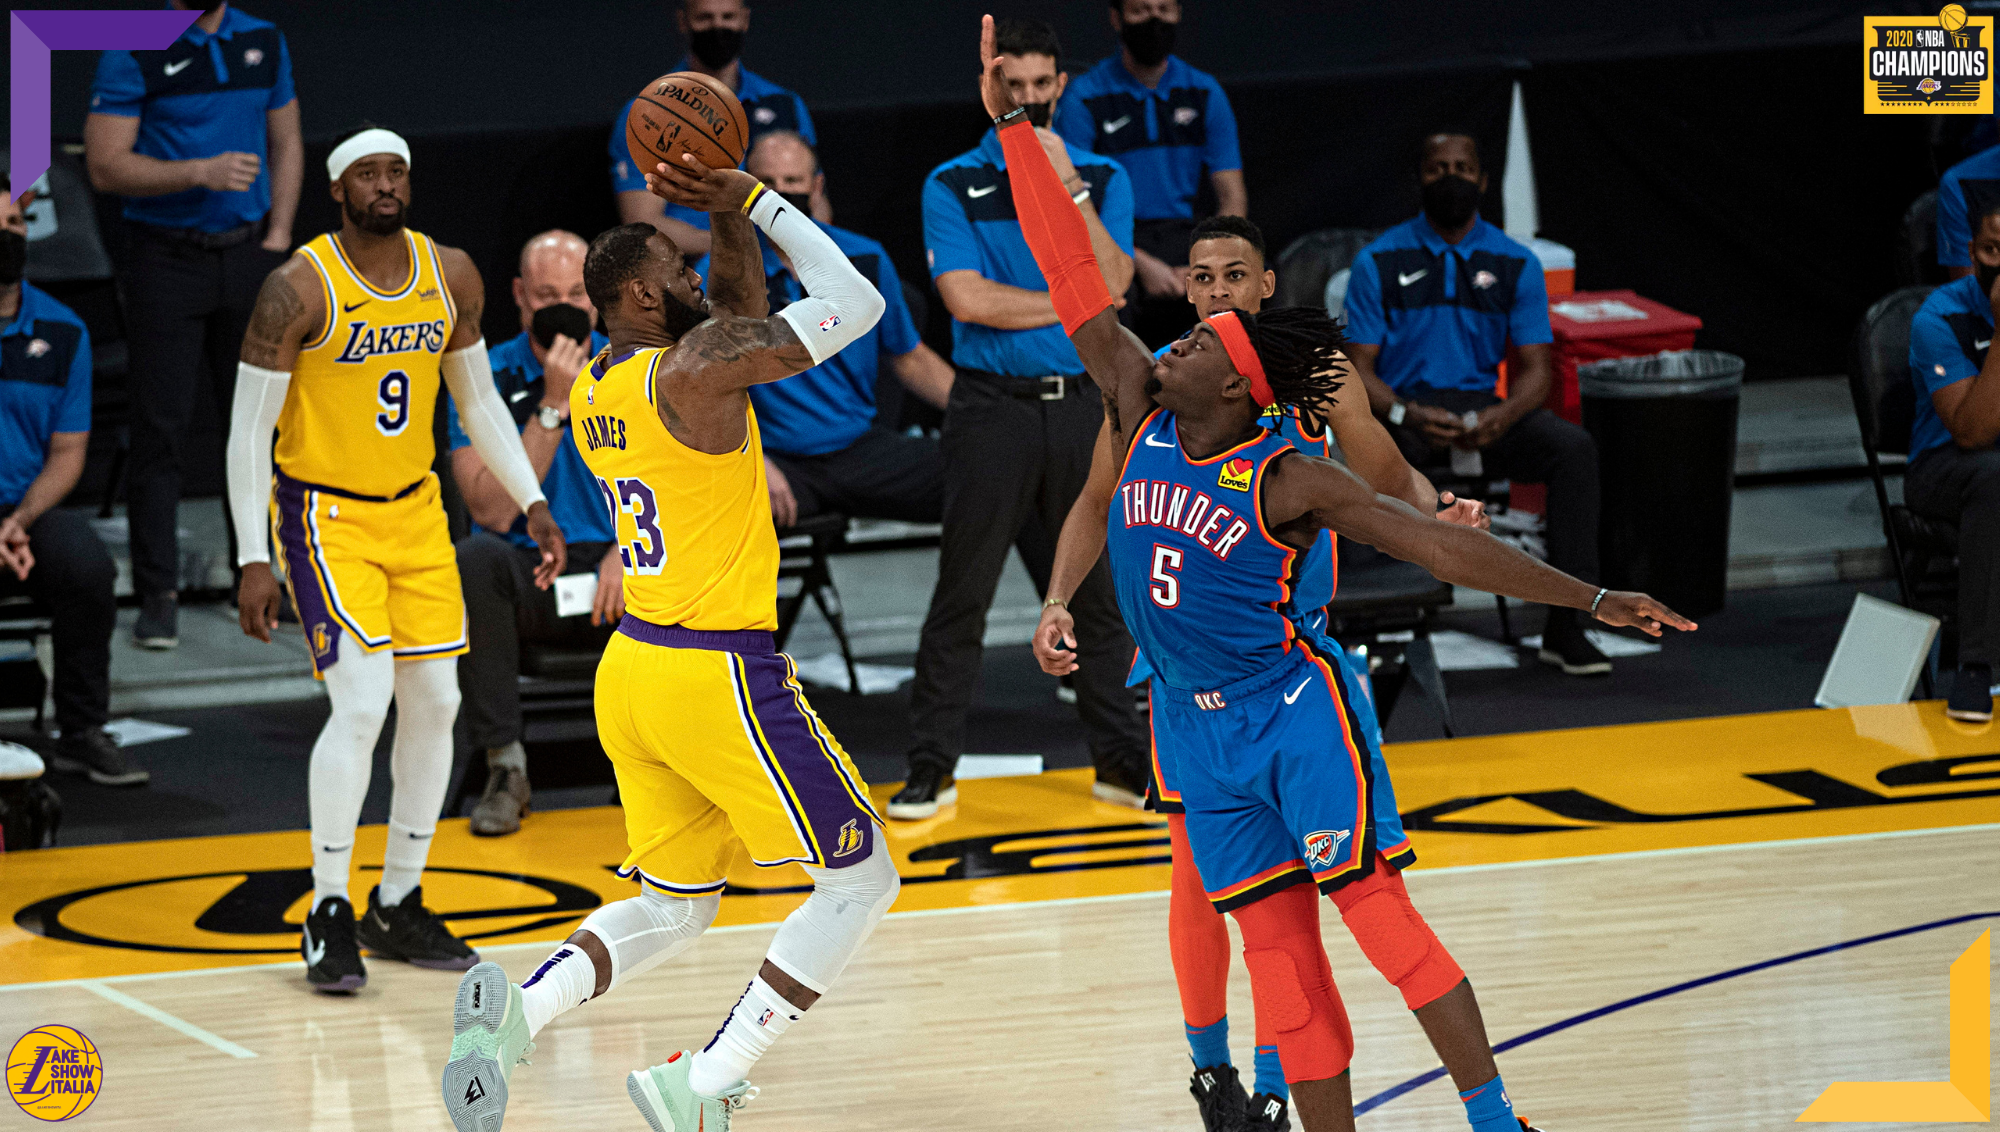 LeBron James and Laguentz Dort, Los Angeles Lakers vs Oklahoma City Thunder